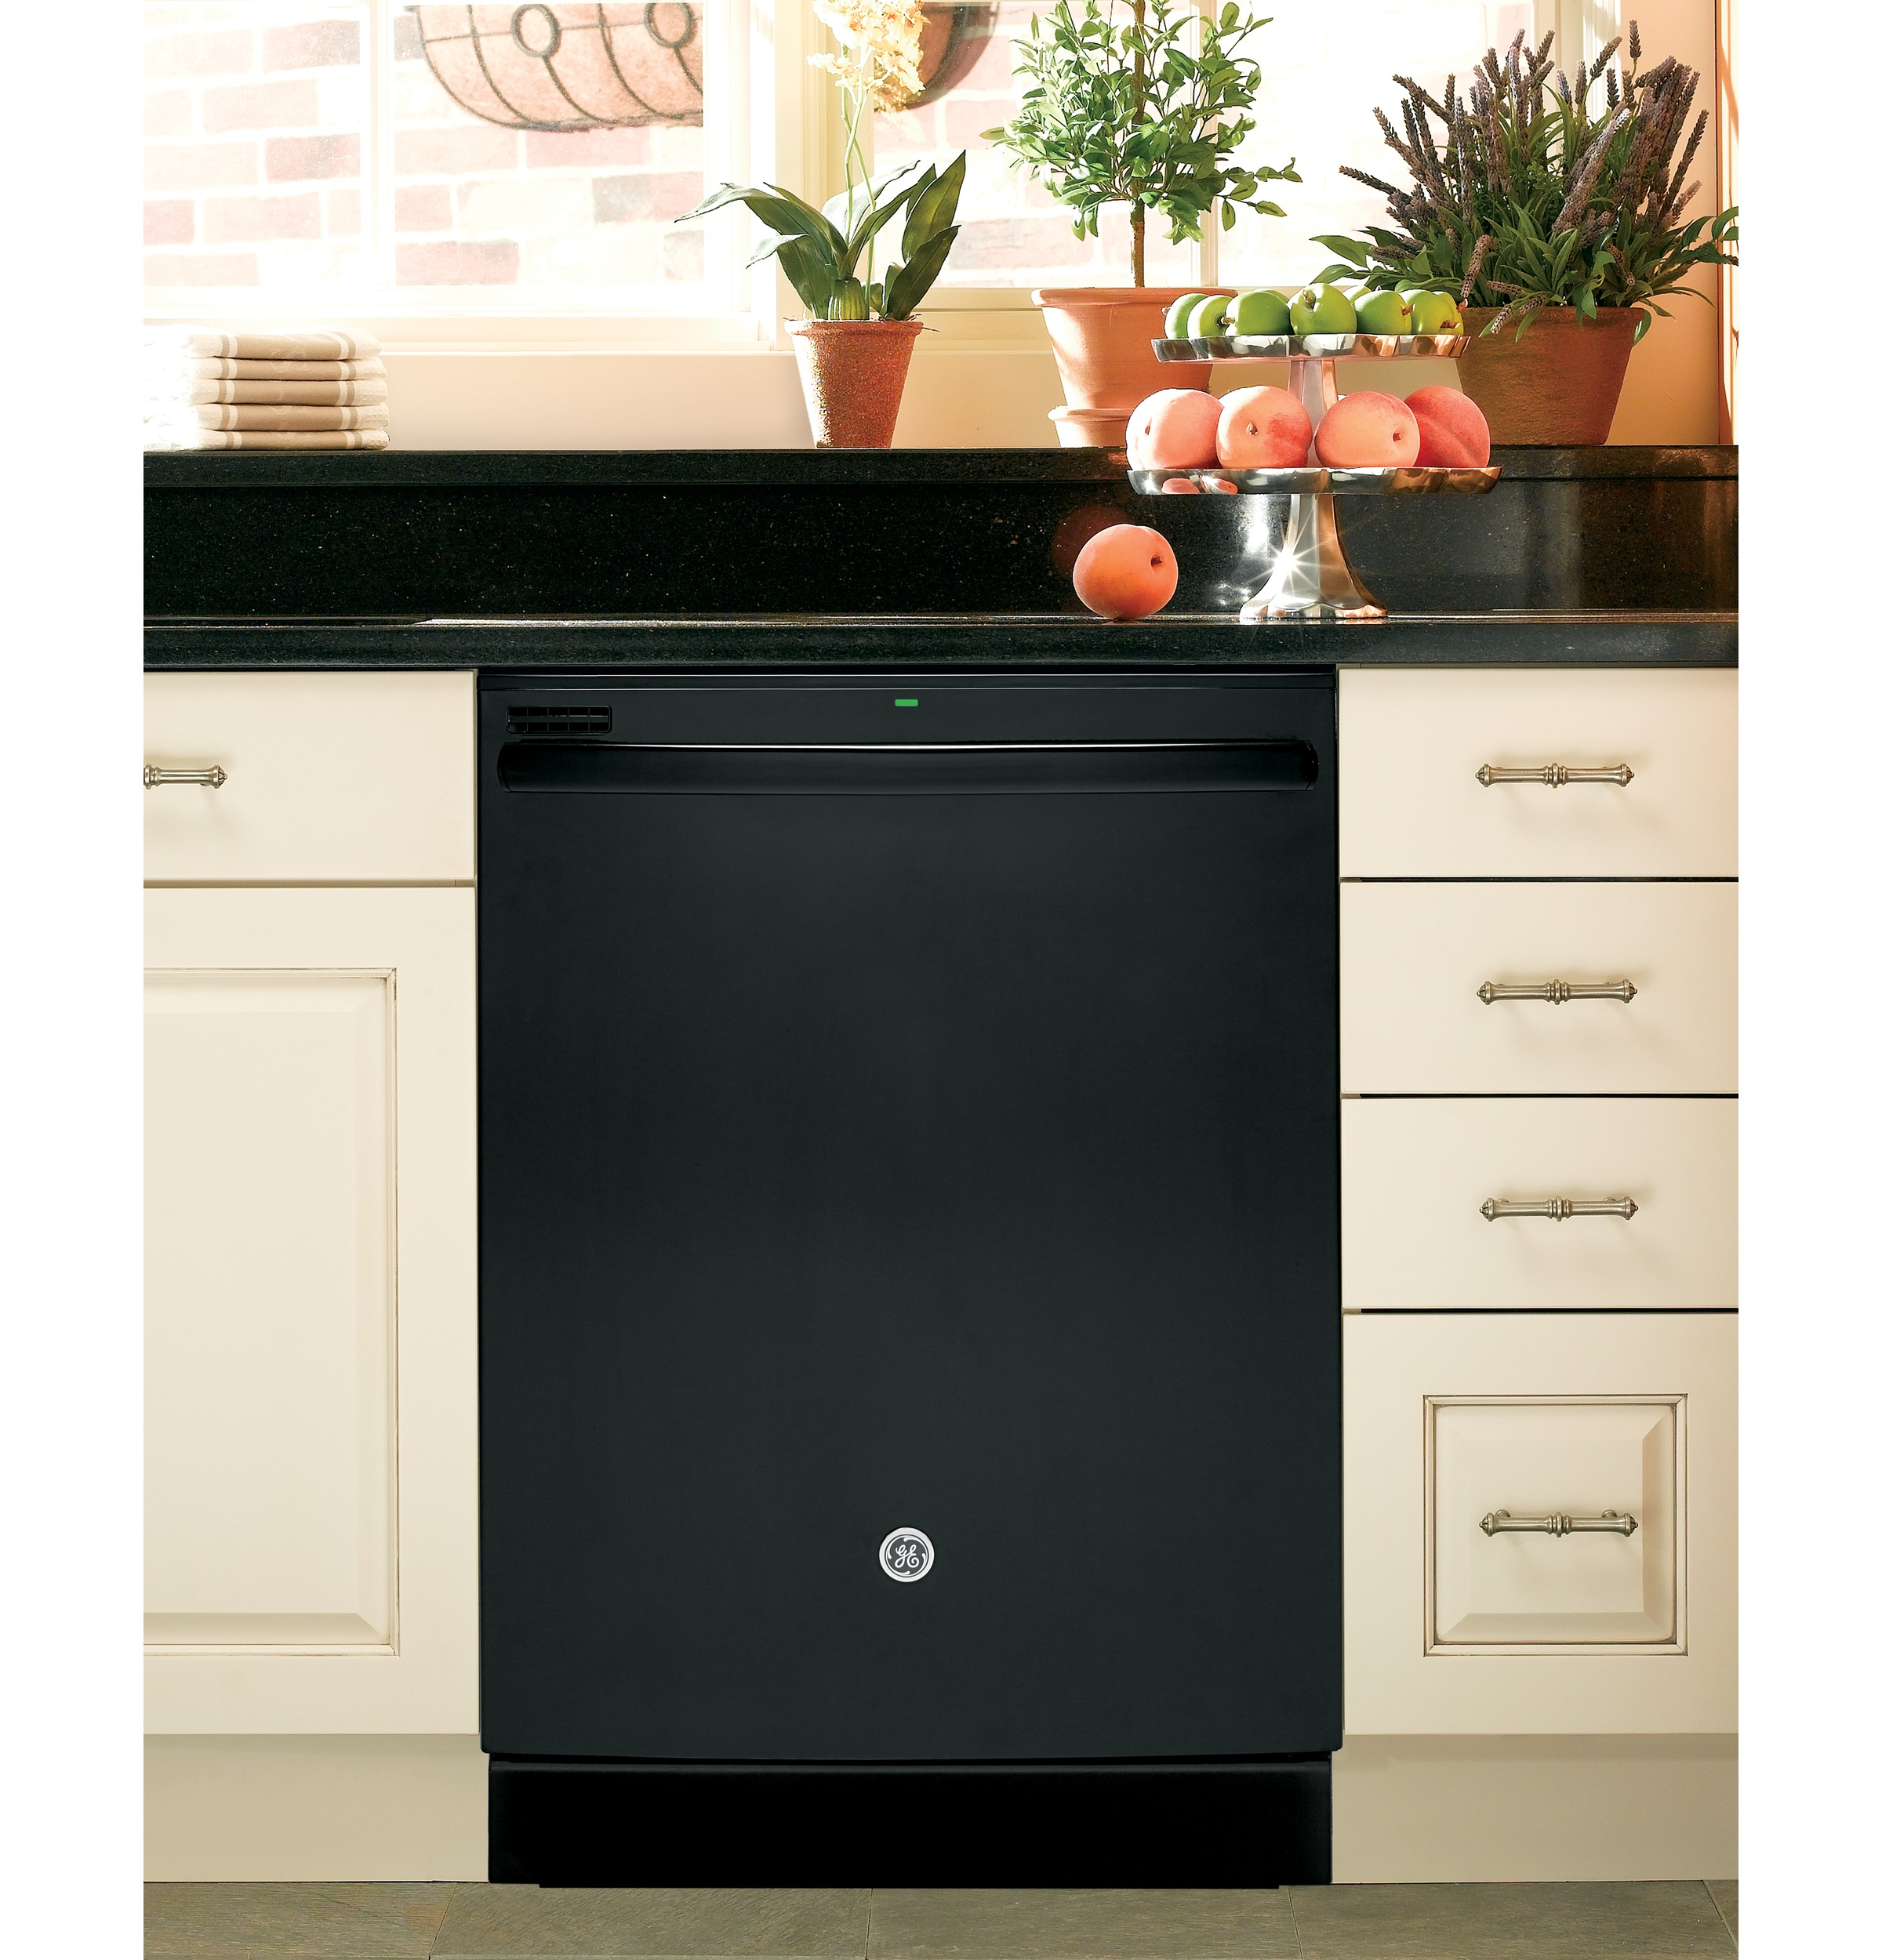 "GE 24"" Hybrid Built-in Dishwasher w/ Stainless Steel Interior - Black"